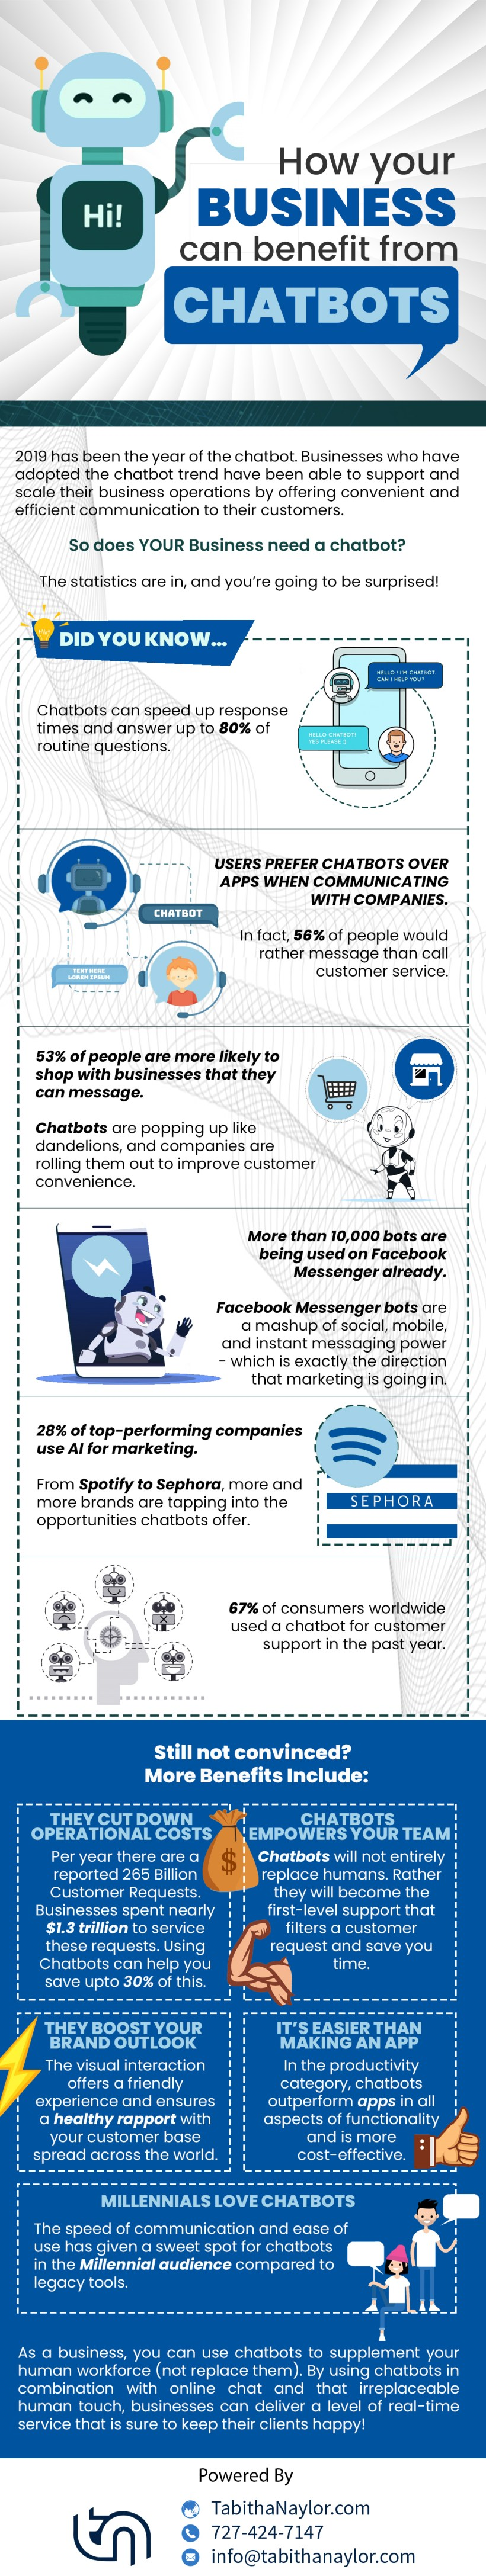 How-your-business-can-benefit-from-Chatbots